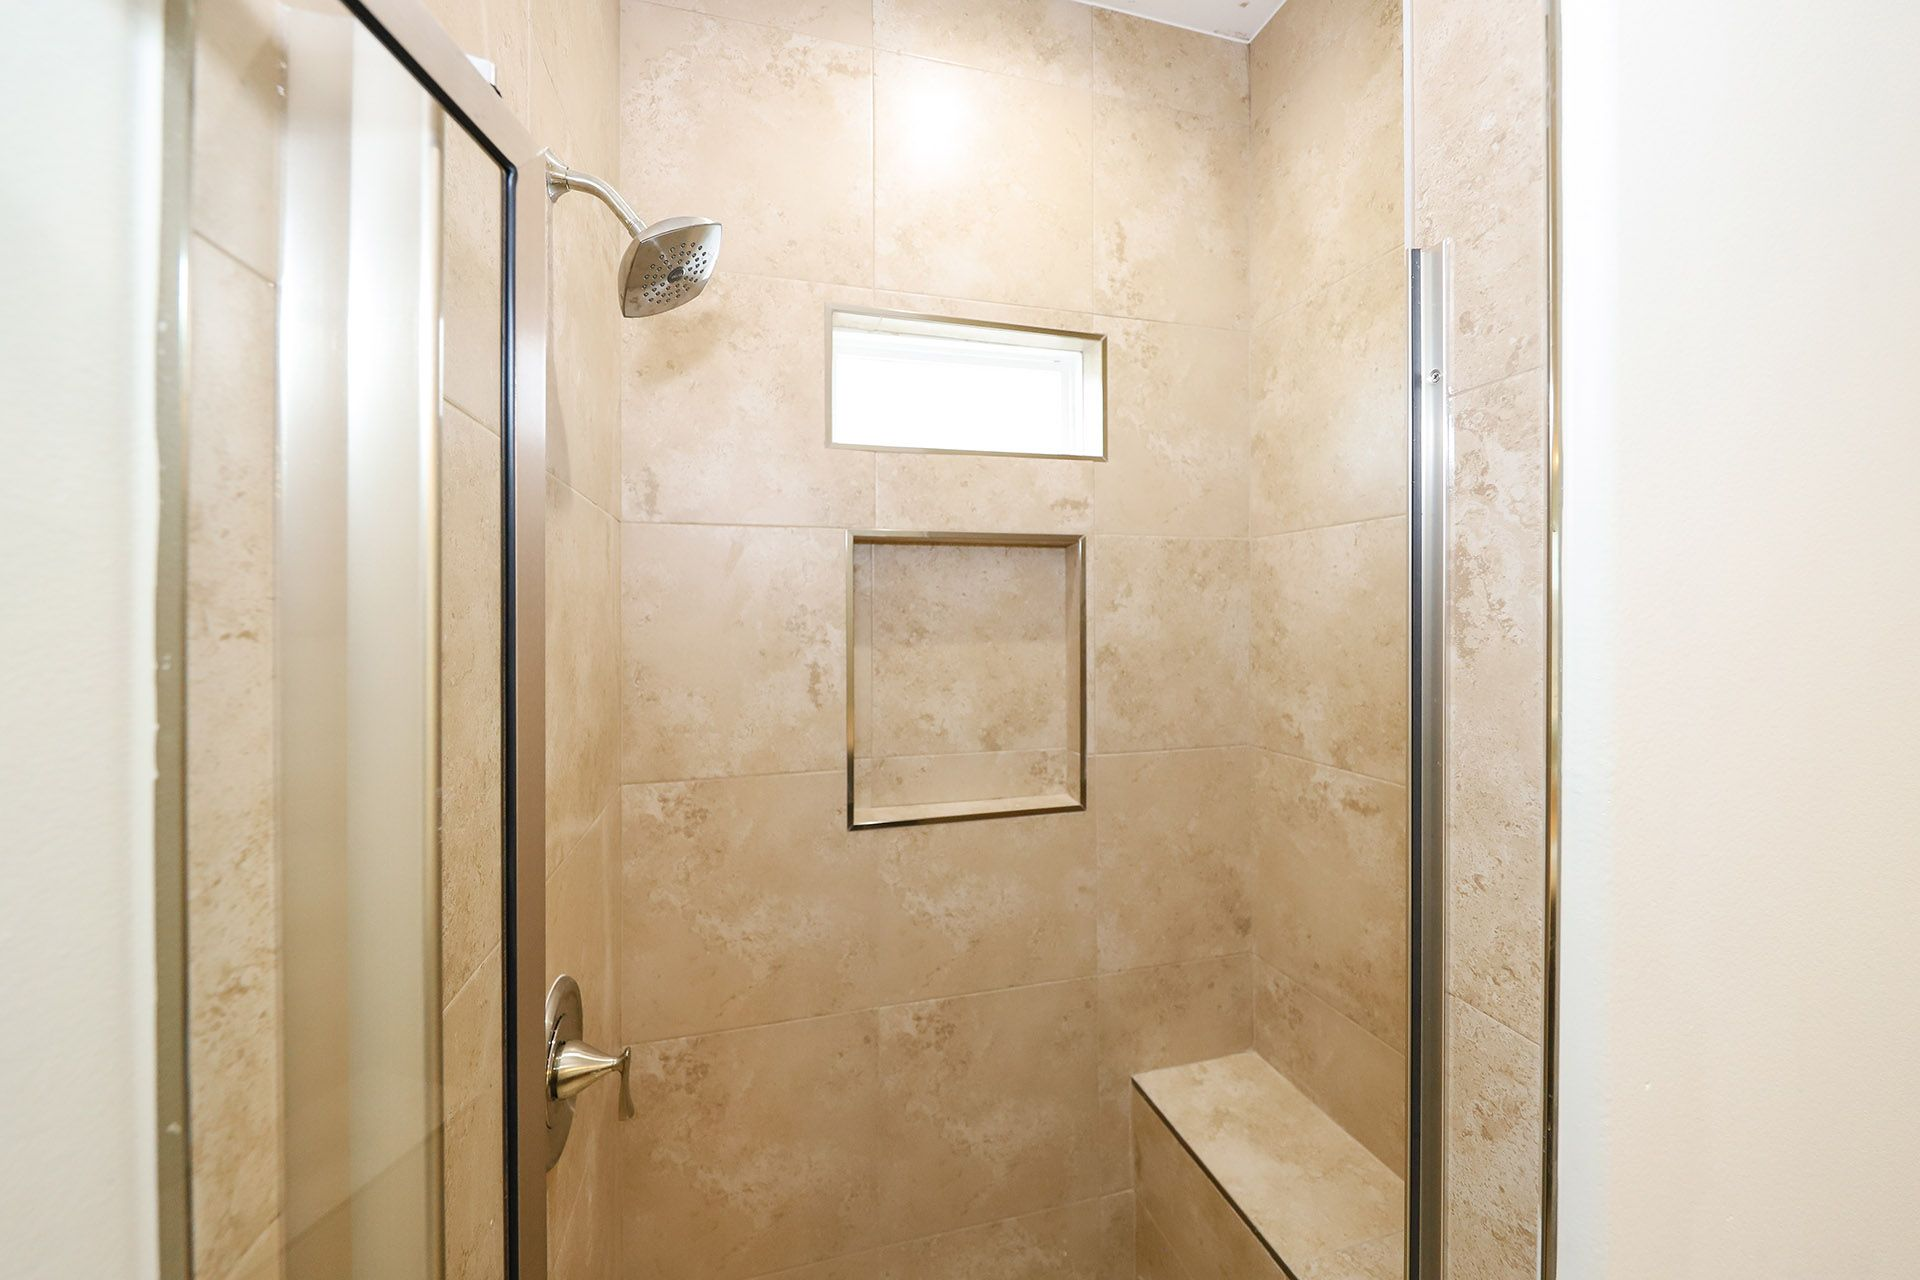 Bathroom featured in the Plan 1 By KRK Homes in Laredo, TX